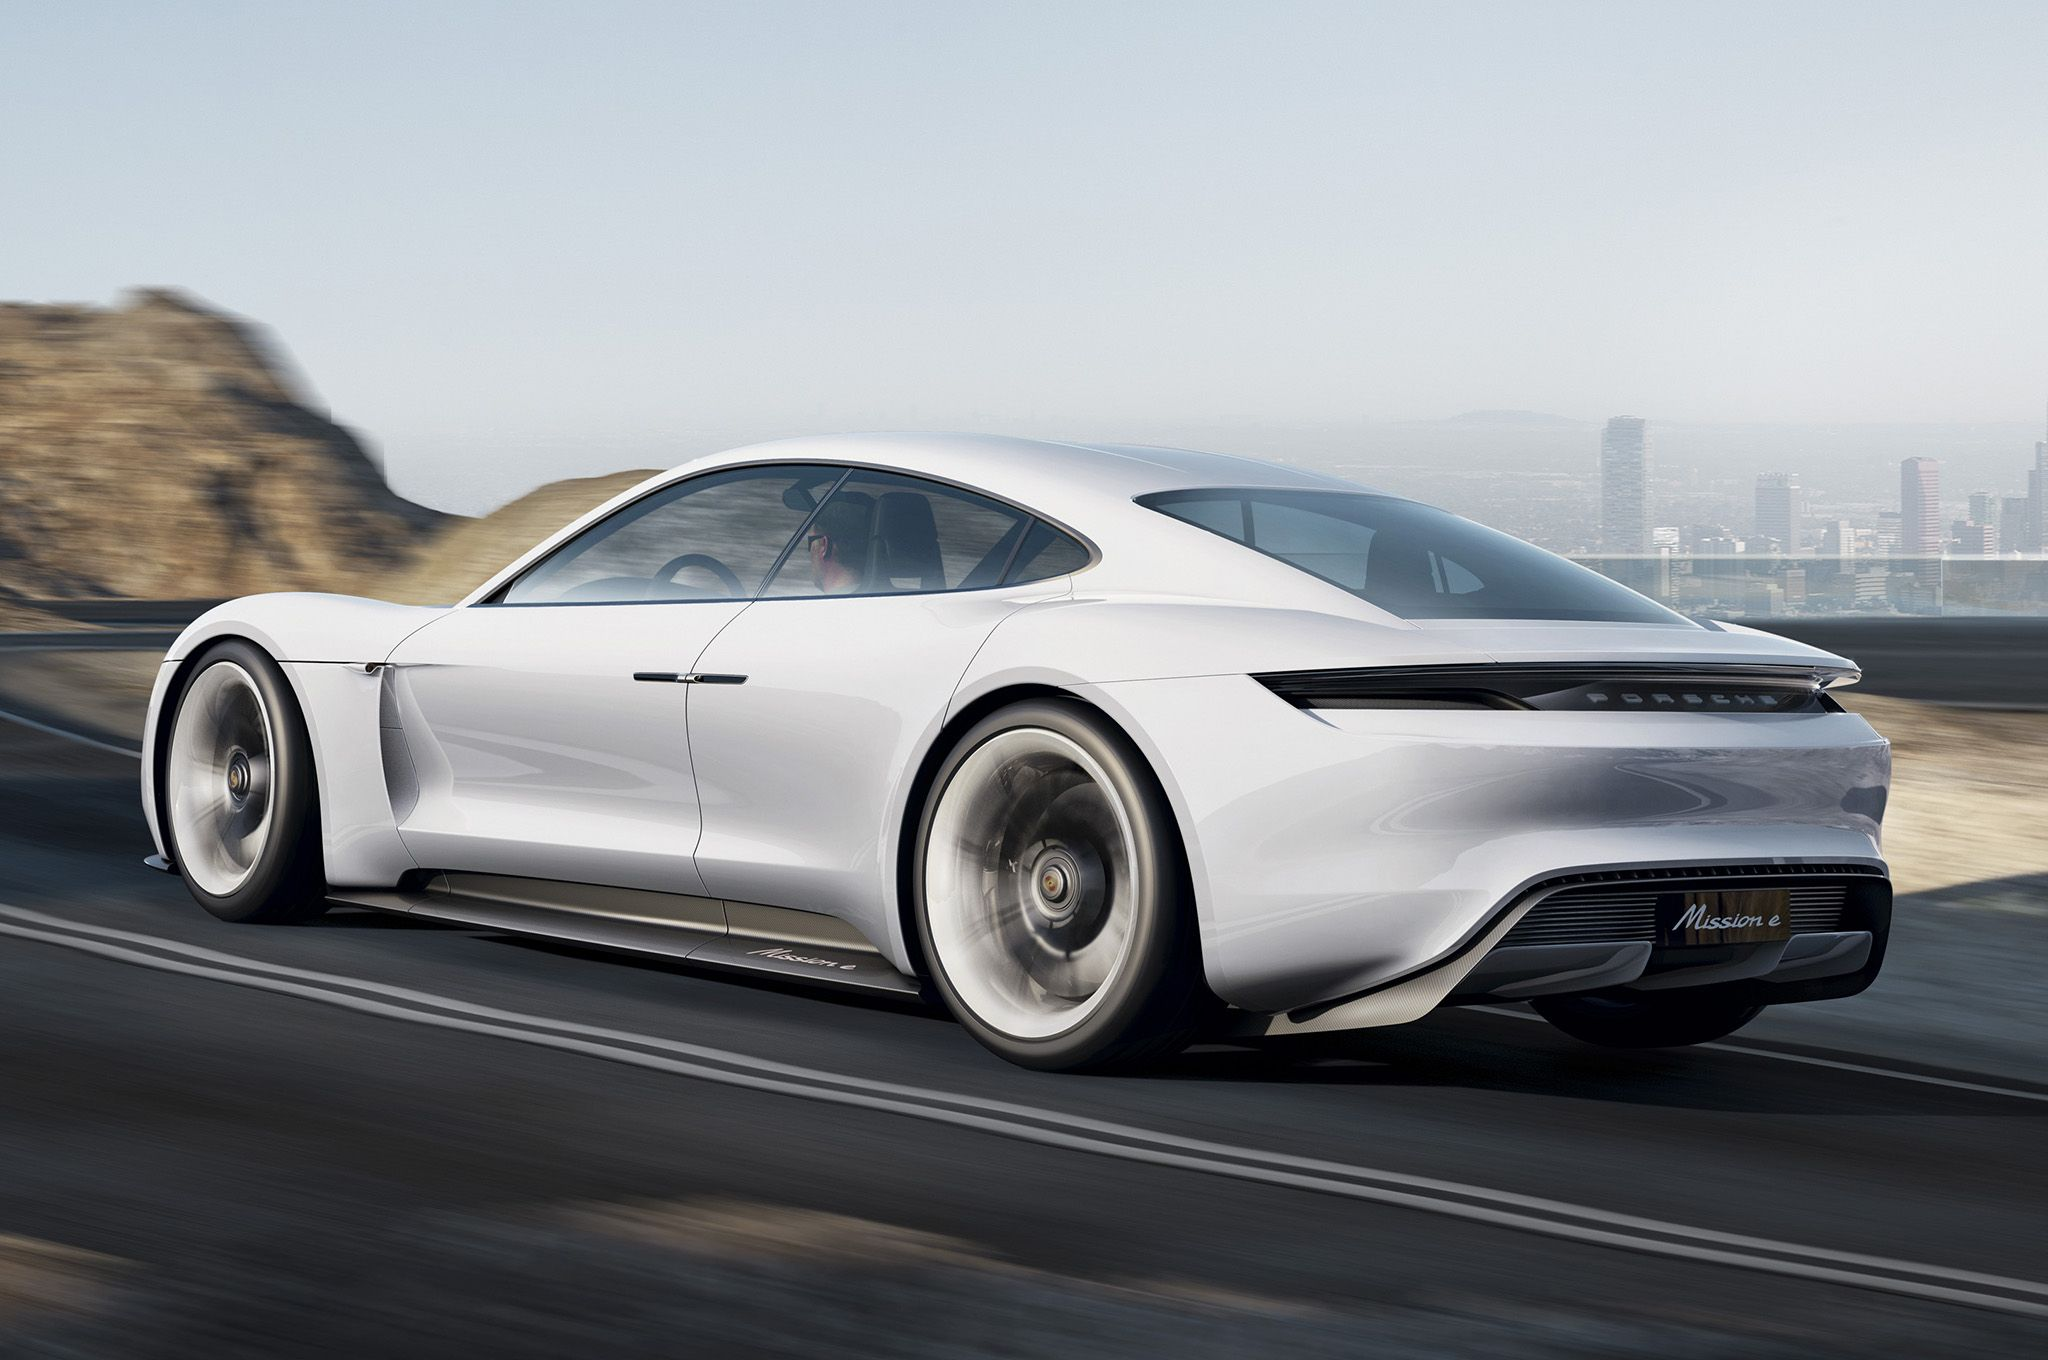 Find this pin and more on the koni experience porsche plans electric car